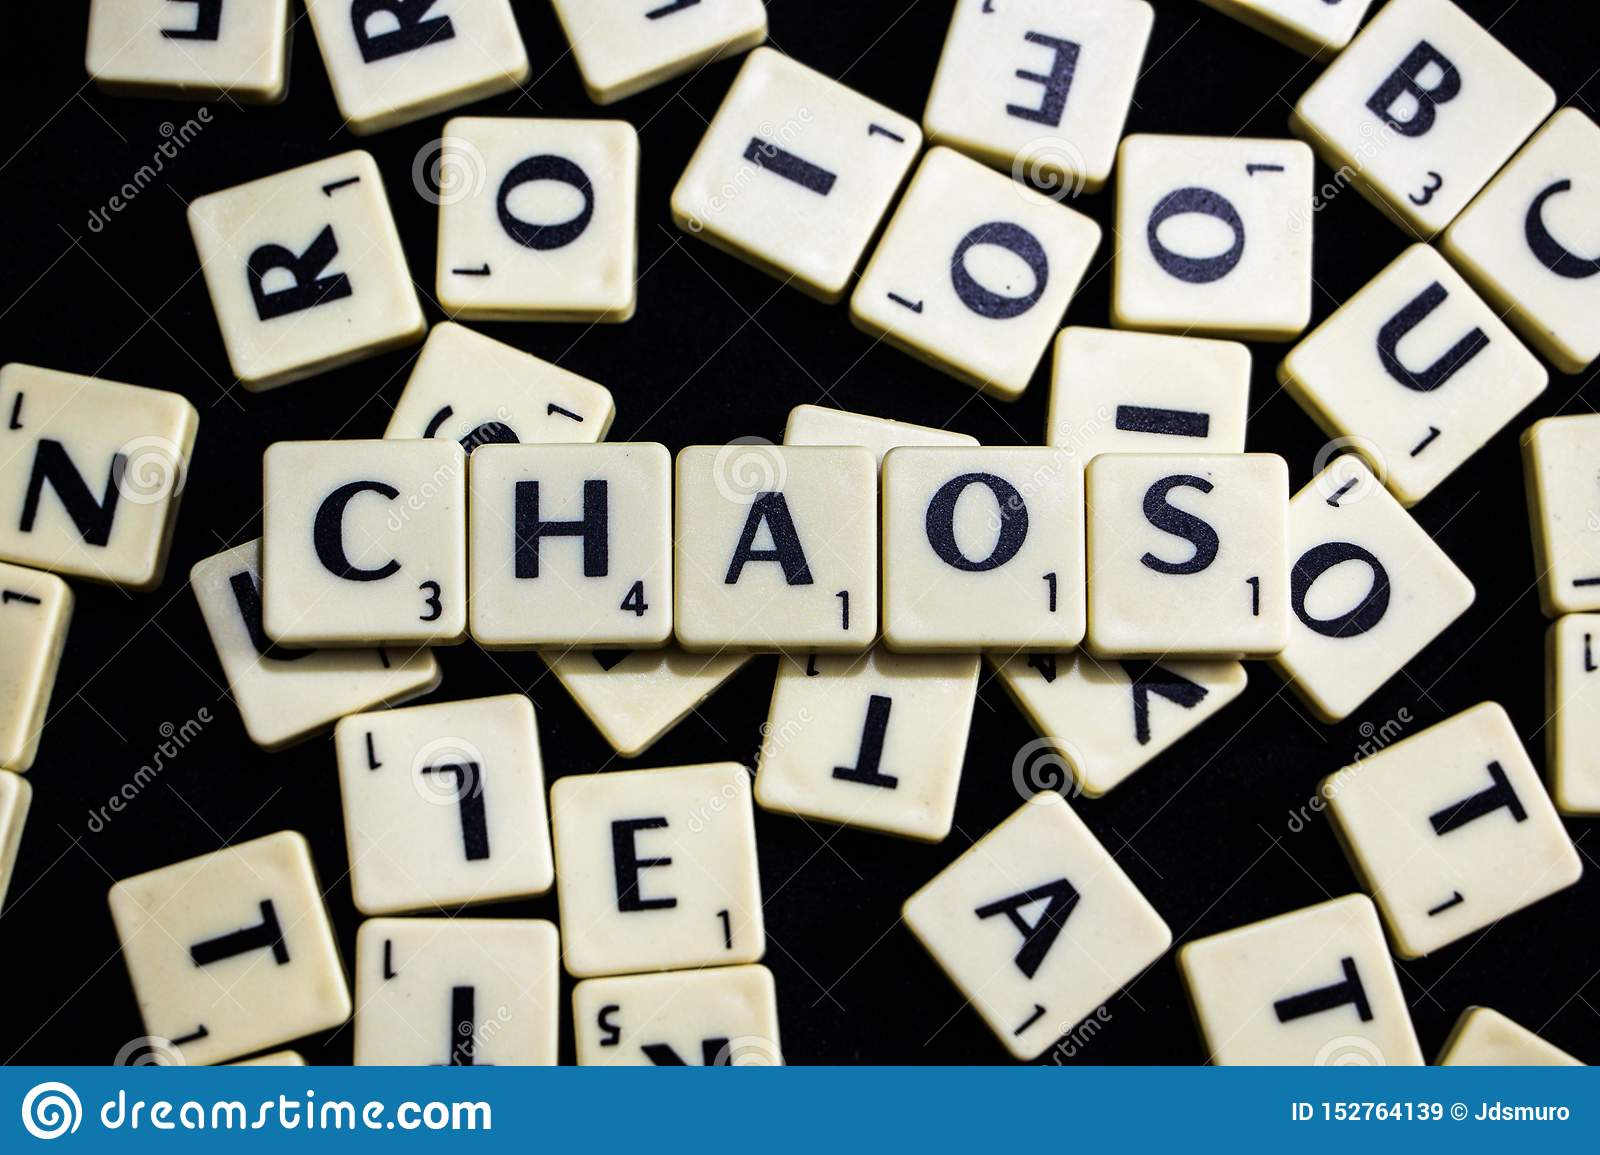 Chaos word spelled with scrabble letters in black background